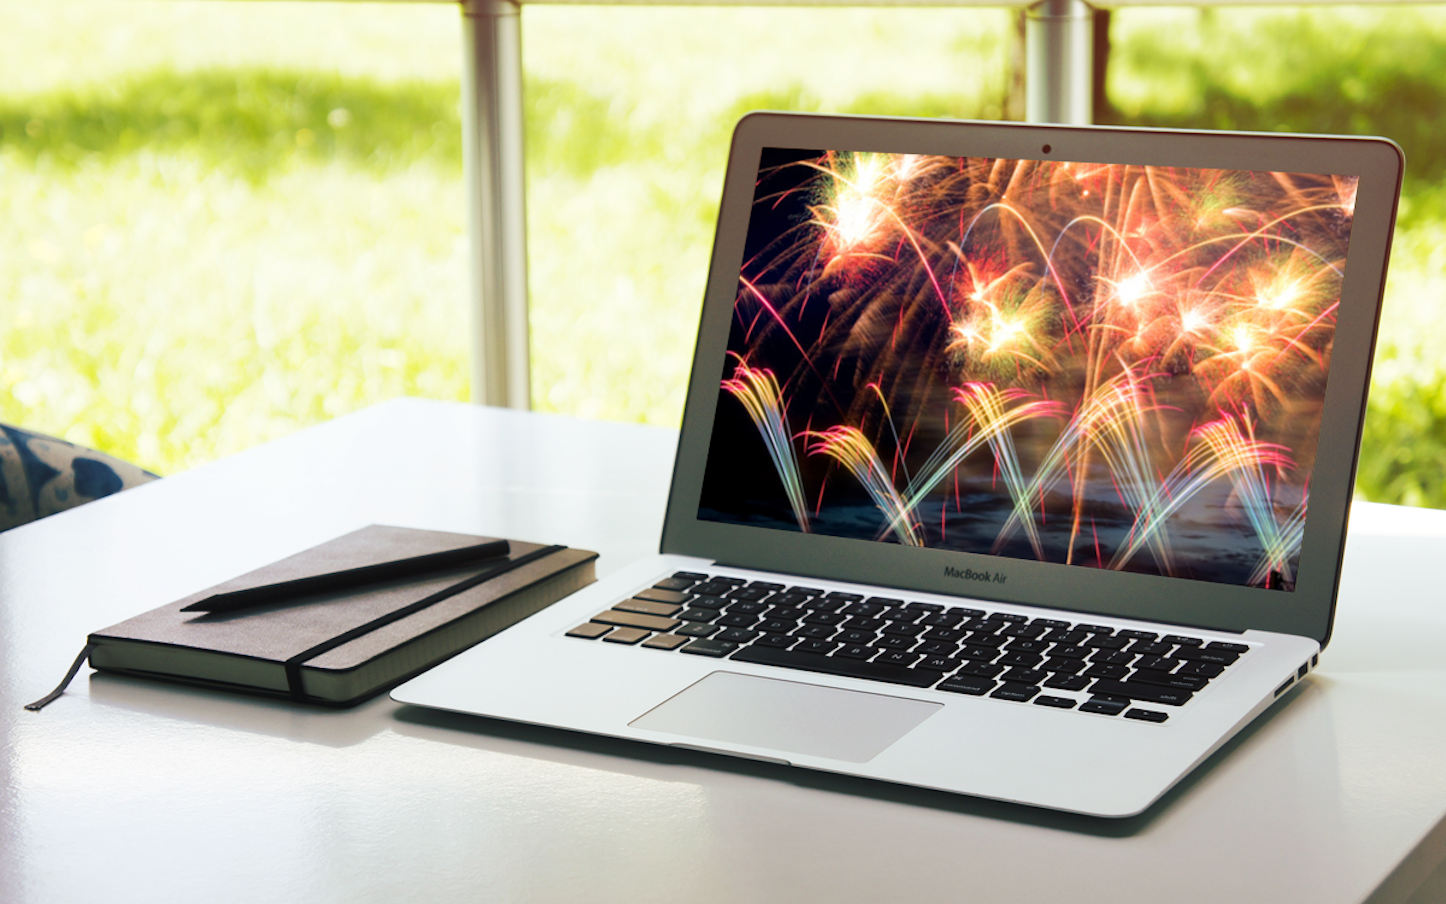 MacBook-Air-Fireworks.png